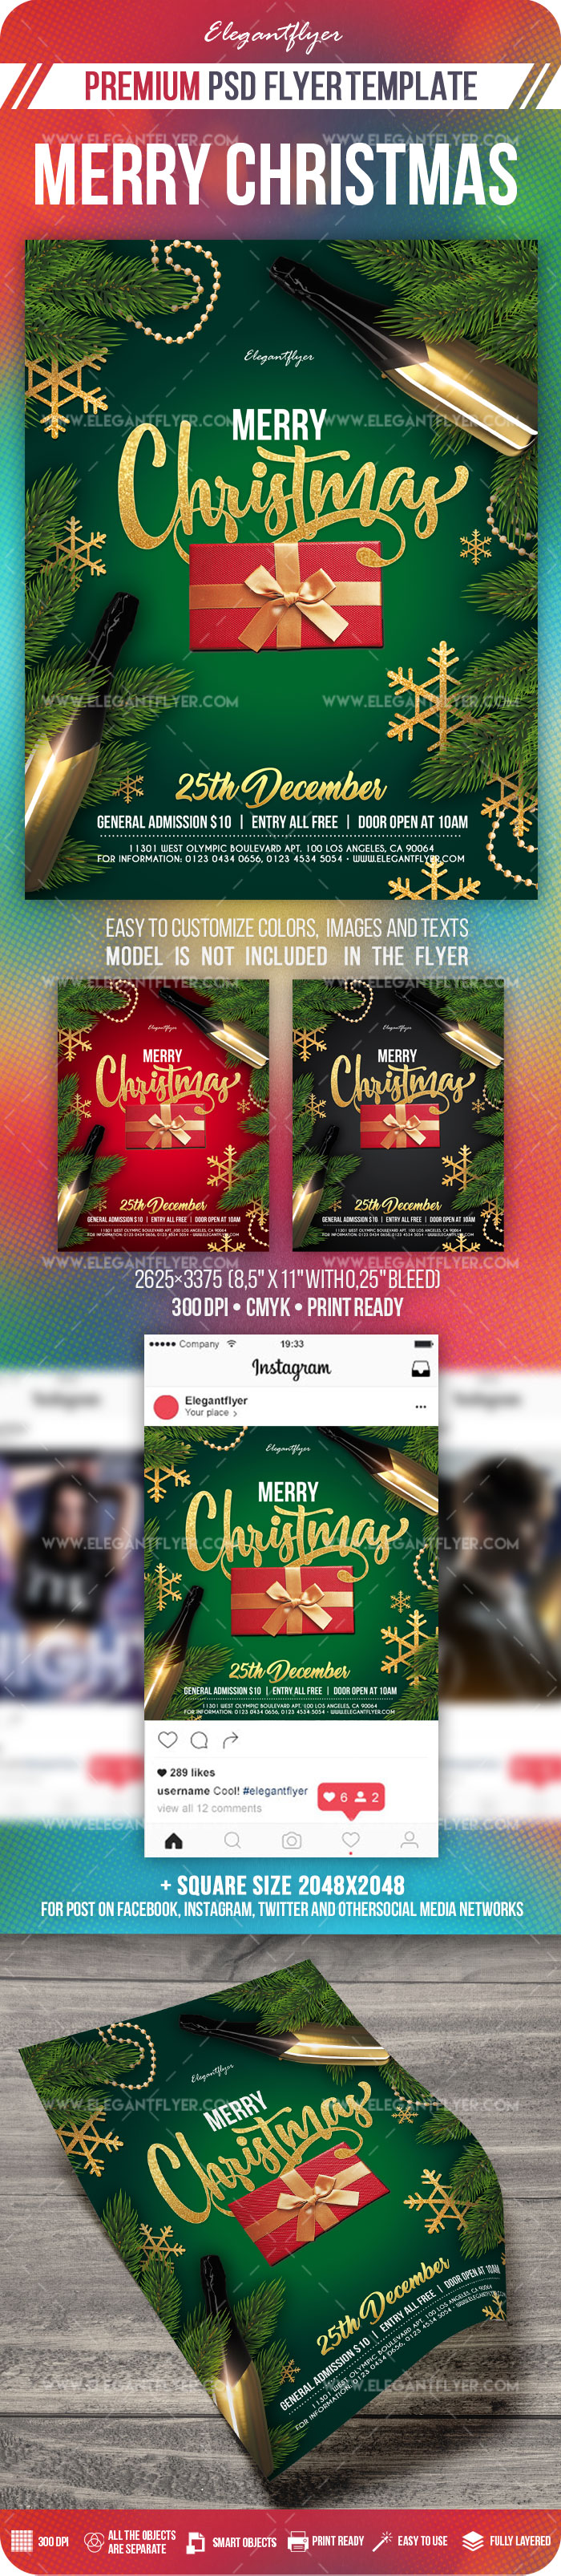 Merry Christmas – Flyer PSD Template + Instagram template